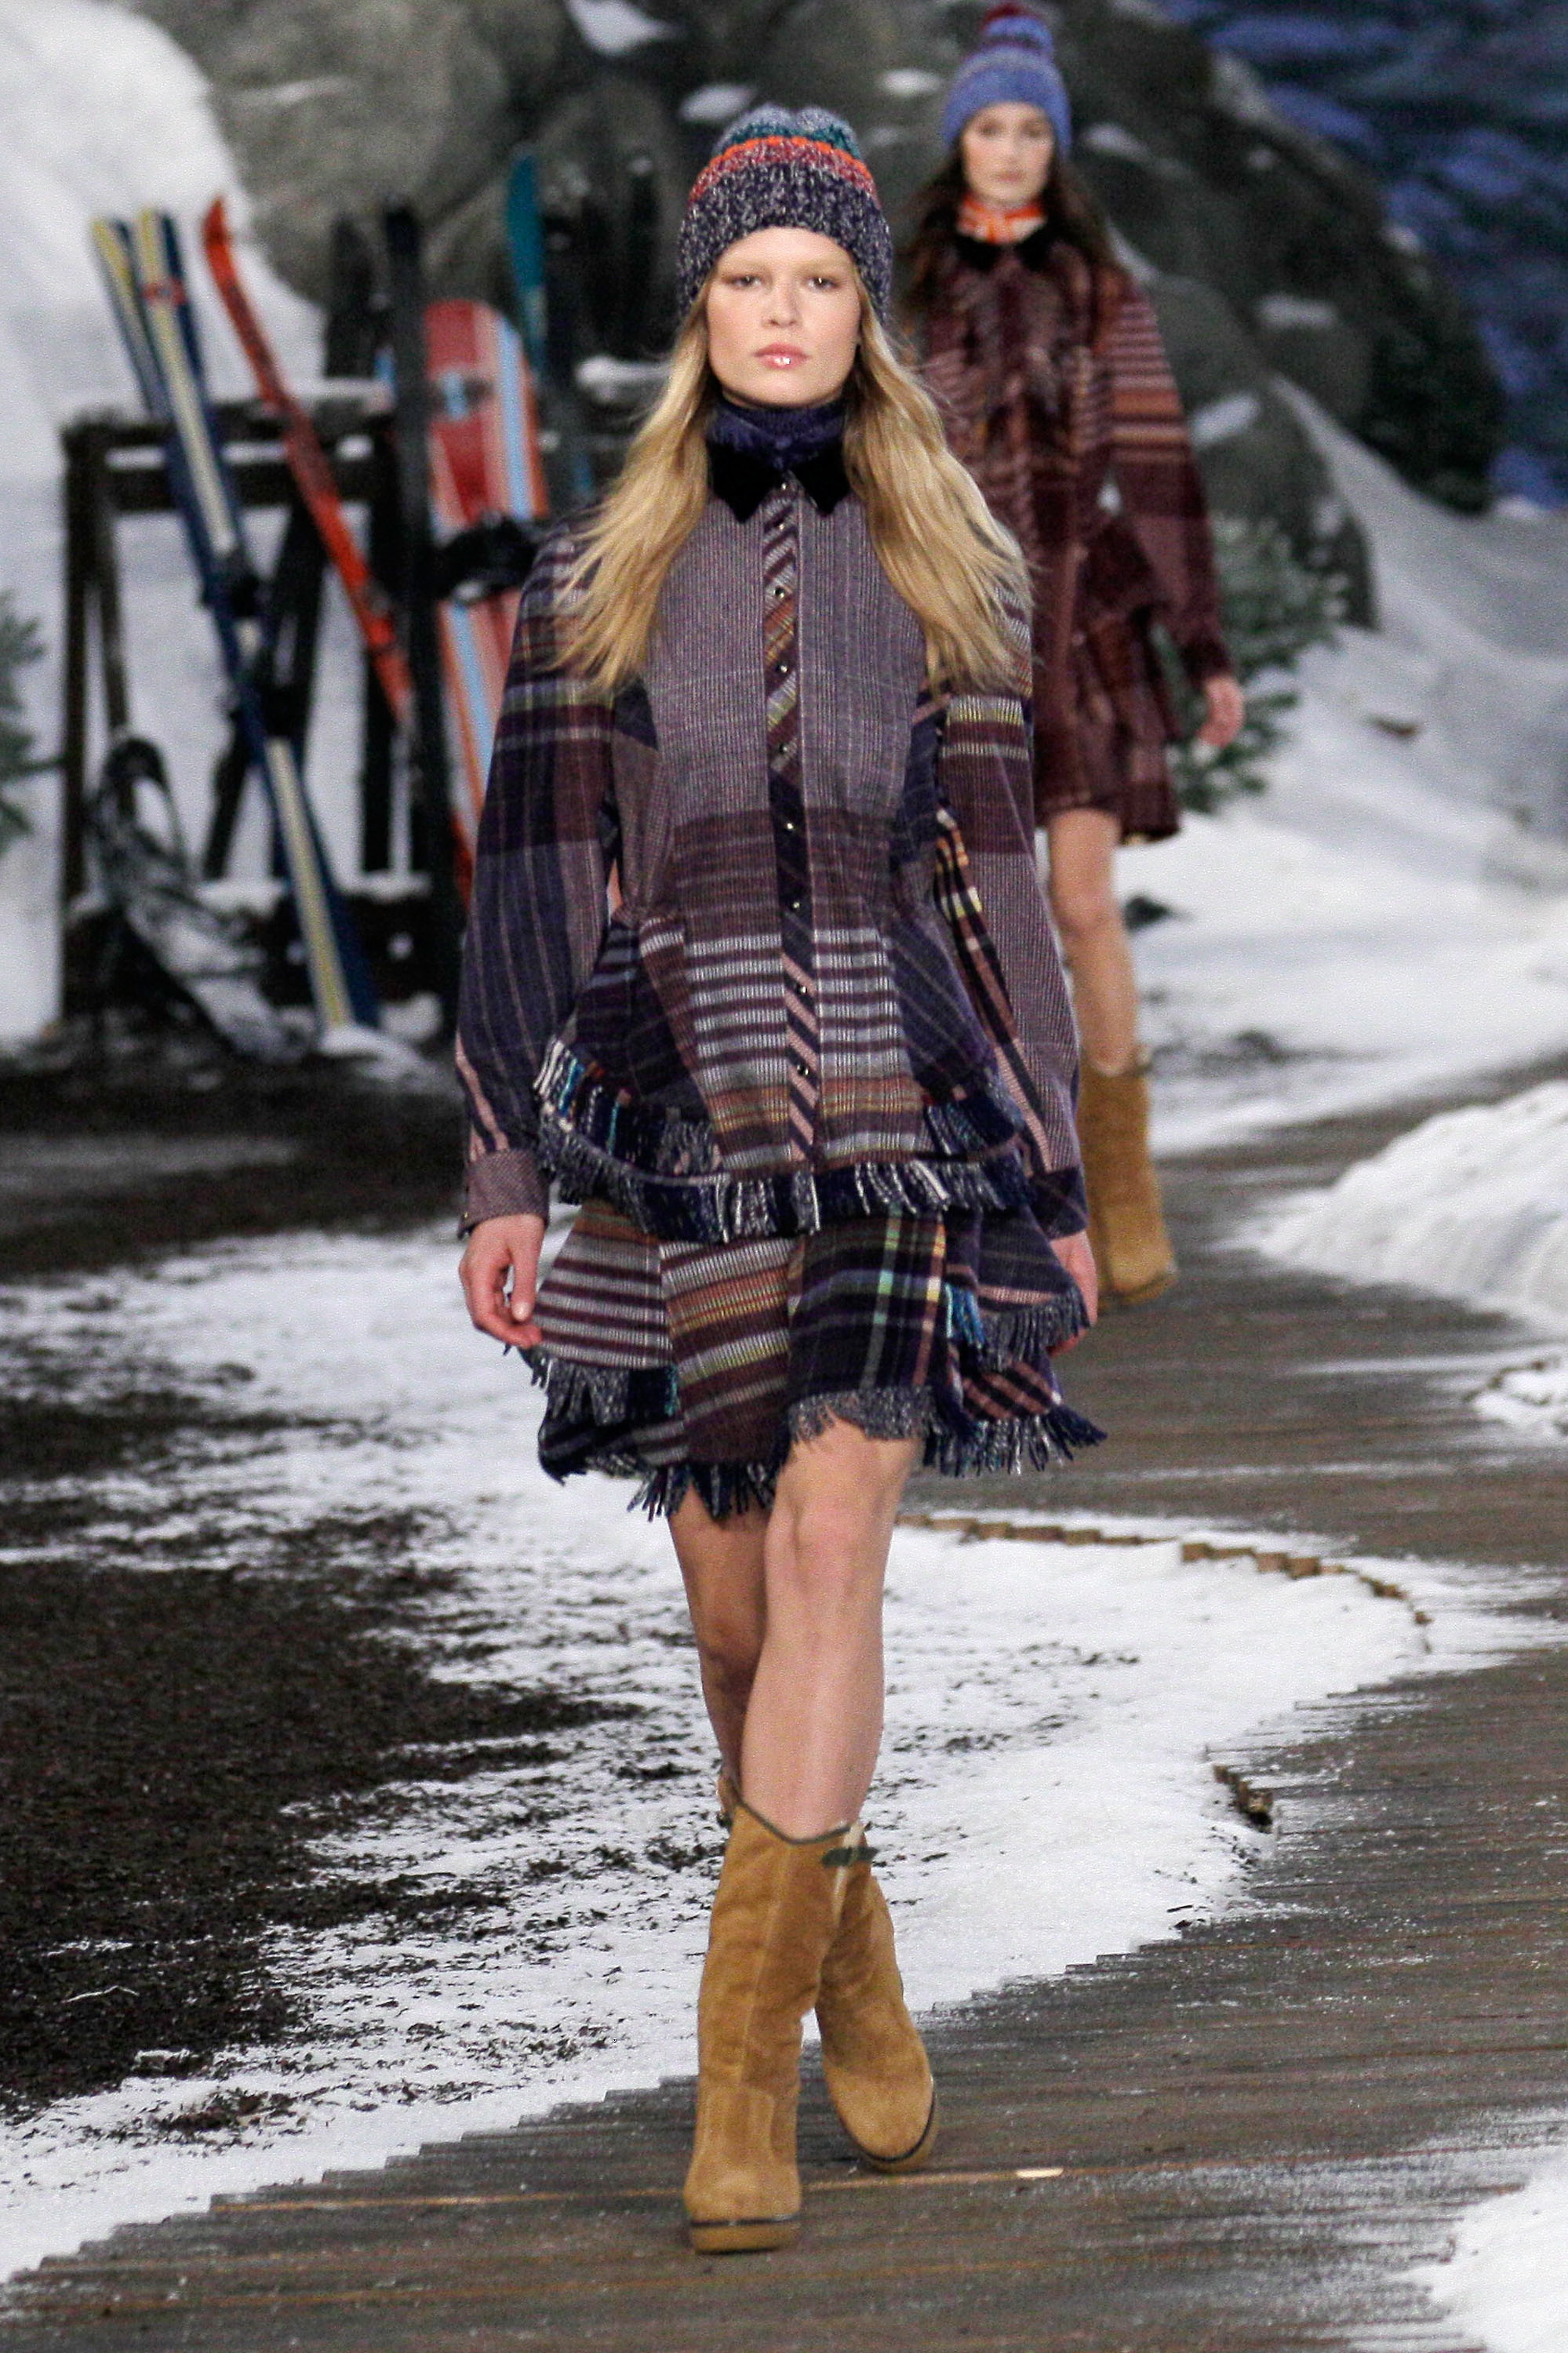 Tommy Hilfiger Presents Fall 2014 Women's Collection - Runway